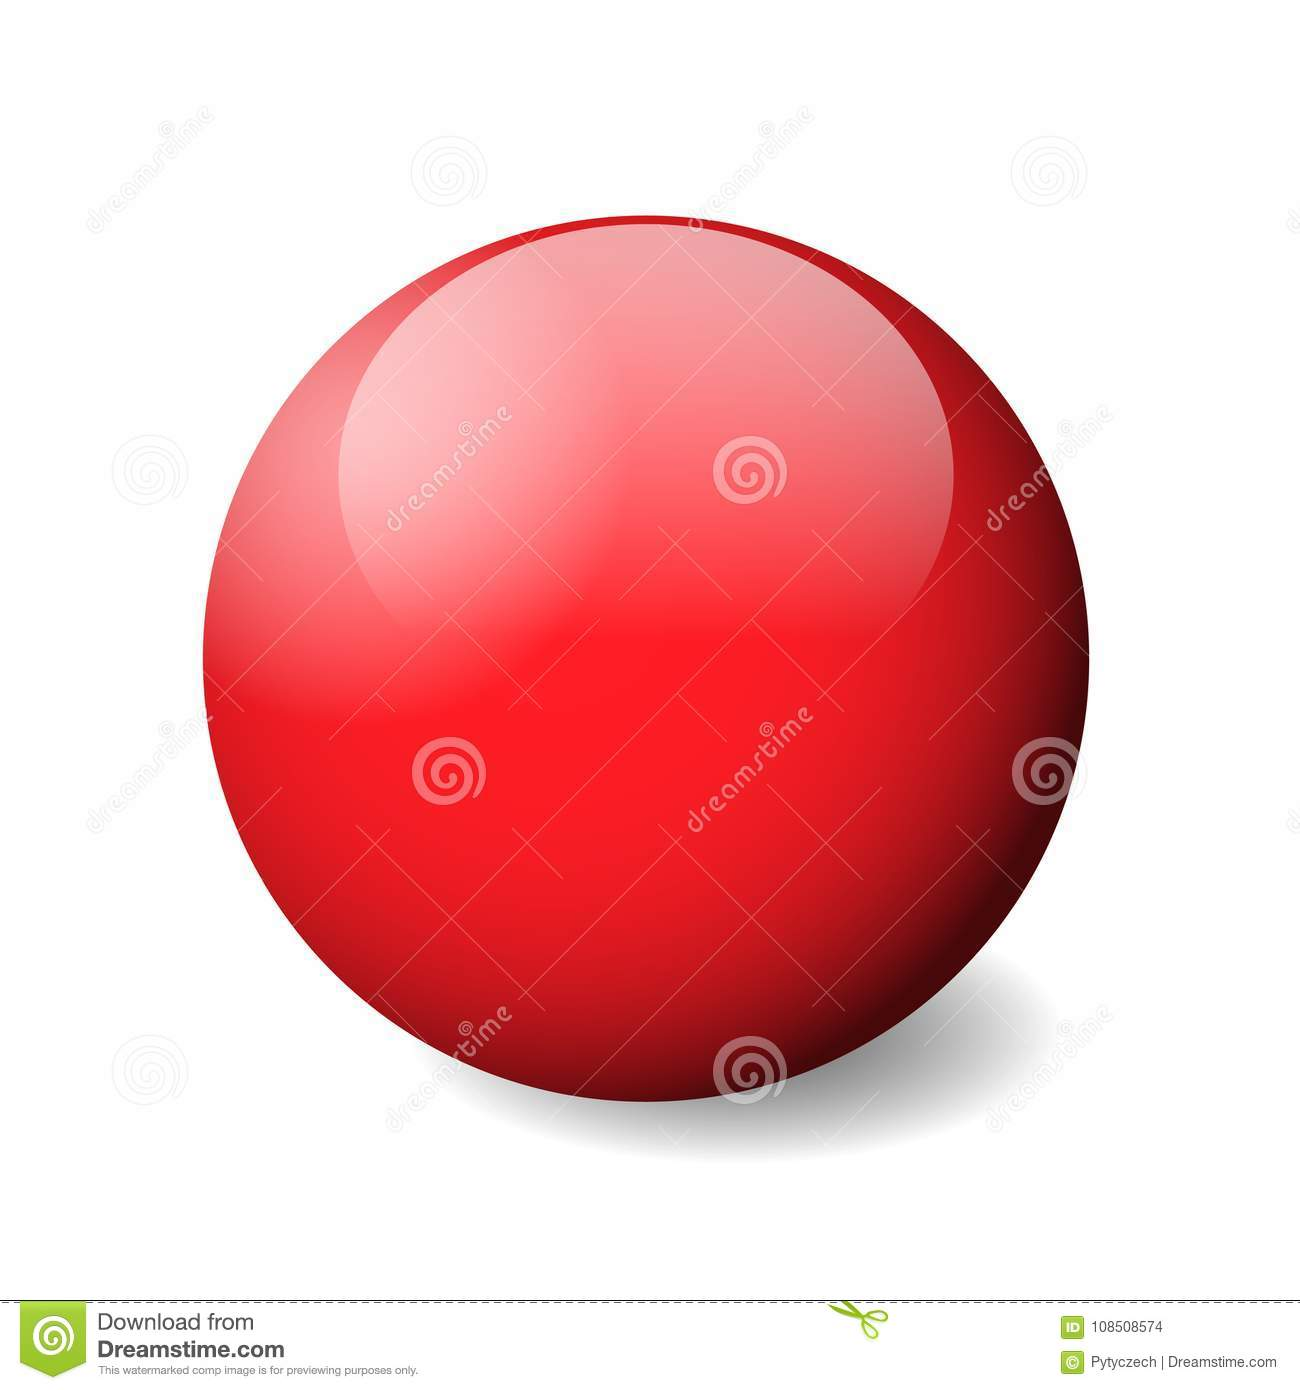 Red glossy sphere, ball or orb. 3D vector object with dropped shadow on white background